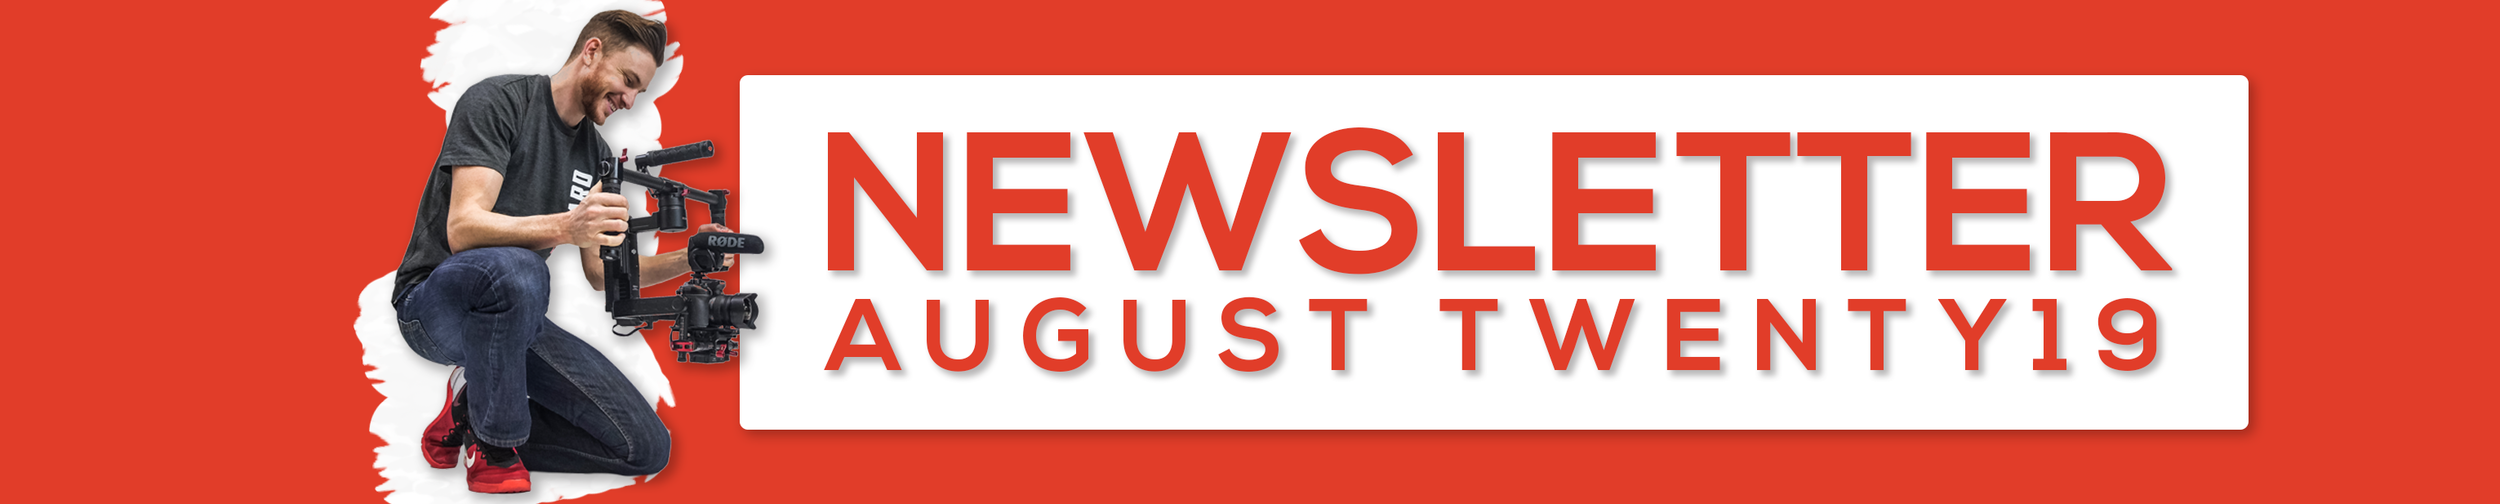 Monthly Newsletter Title August 19.png